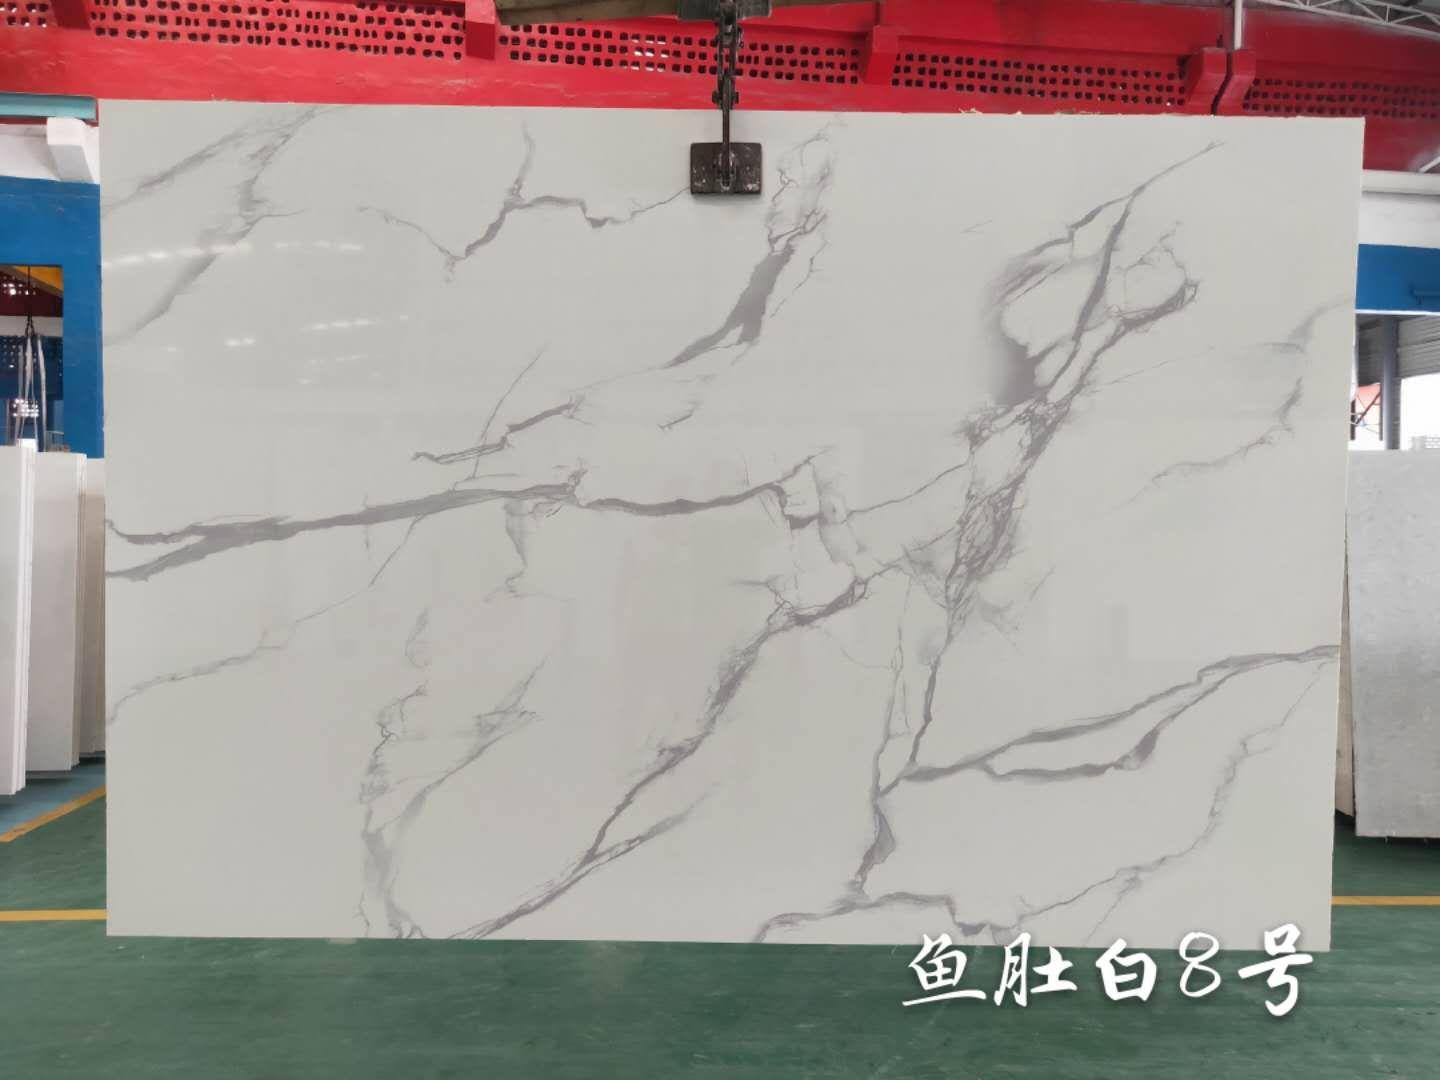 marble stone 3D print artificial marble slabs 1